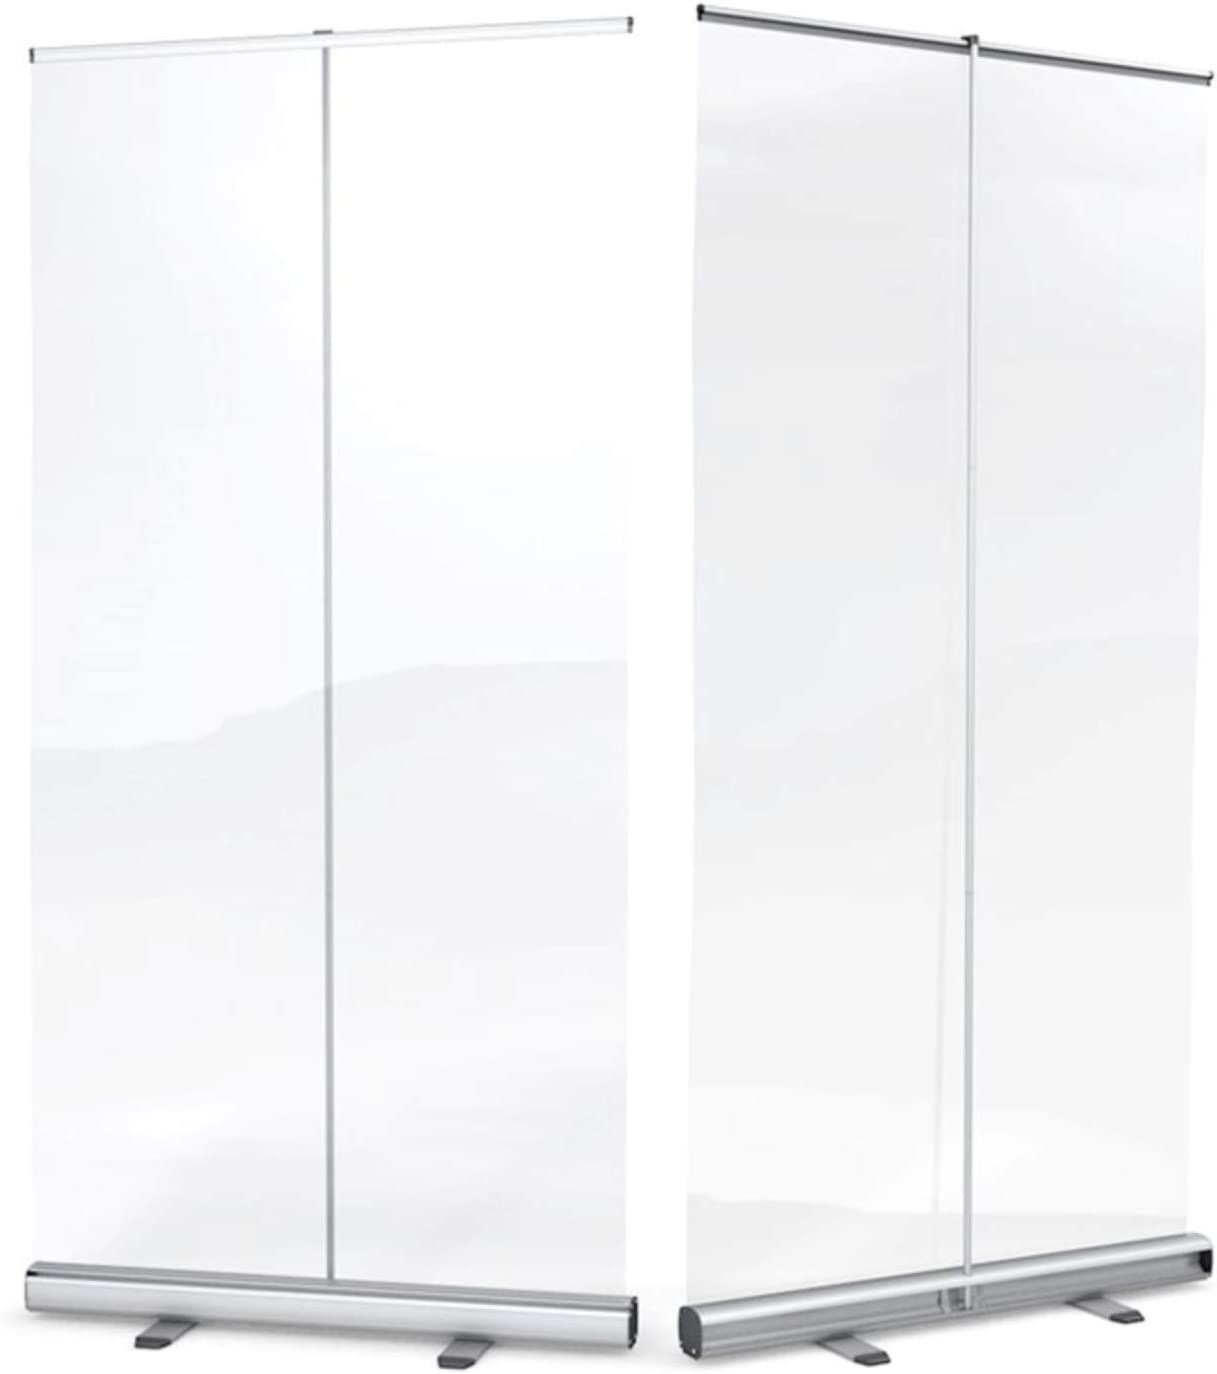 Needcraft Extra Large Retractable Clear Protective Screens 1500mm x 2000mm